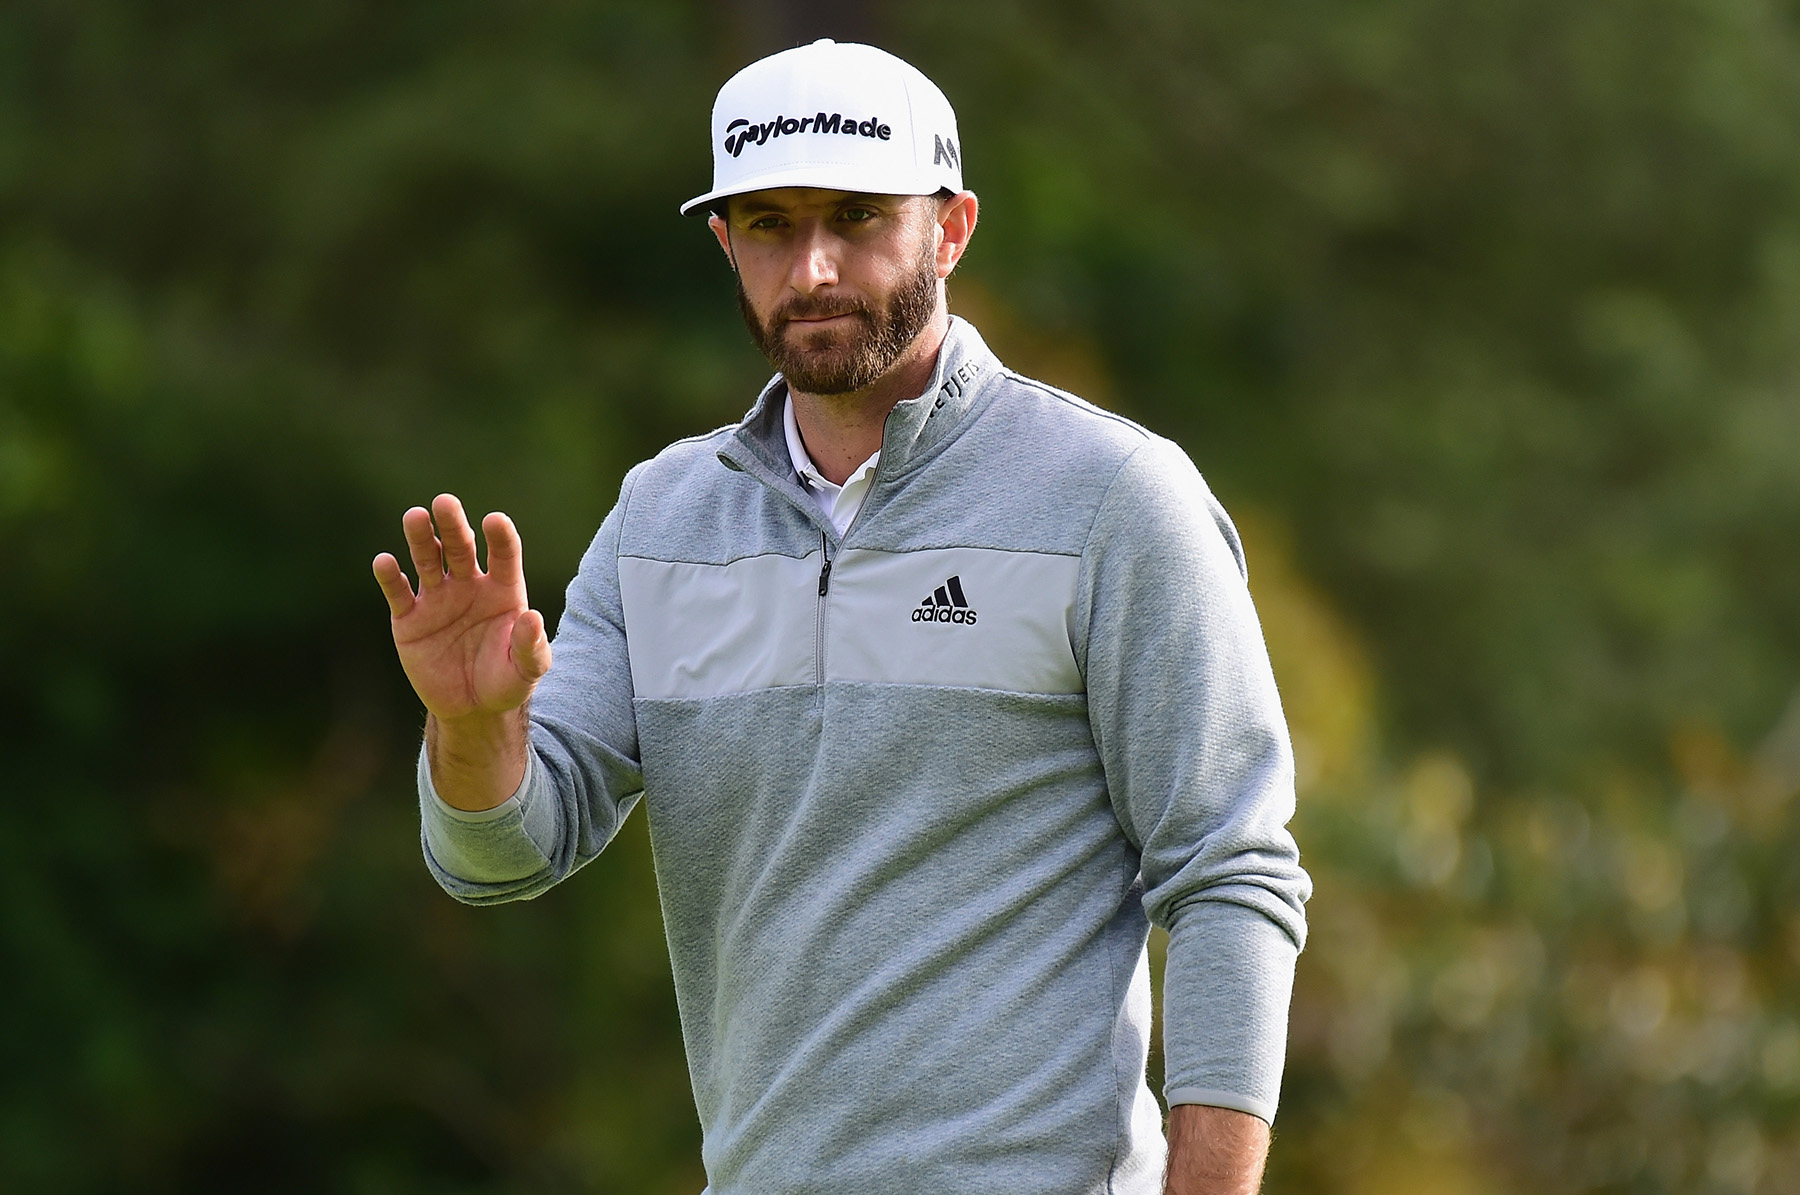 PACIFIC PALISADES, CA - FEBRUARY 19: Dustin Johnson reacts to his putt on the 12th hole during the final round at the Genesis Open at Riviera Country Club on February 19, 2017 in Pacific Palisades, California. (Photo by Harry How/Getty Images)